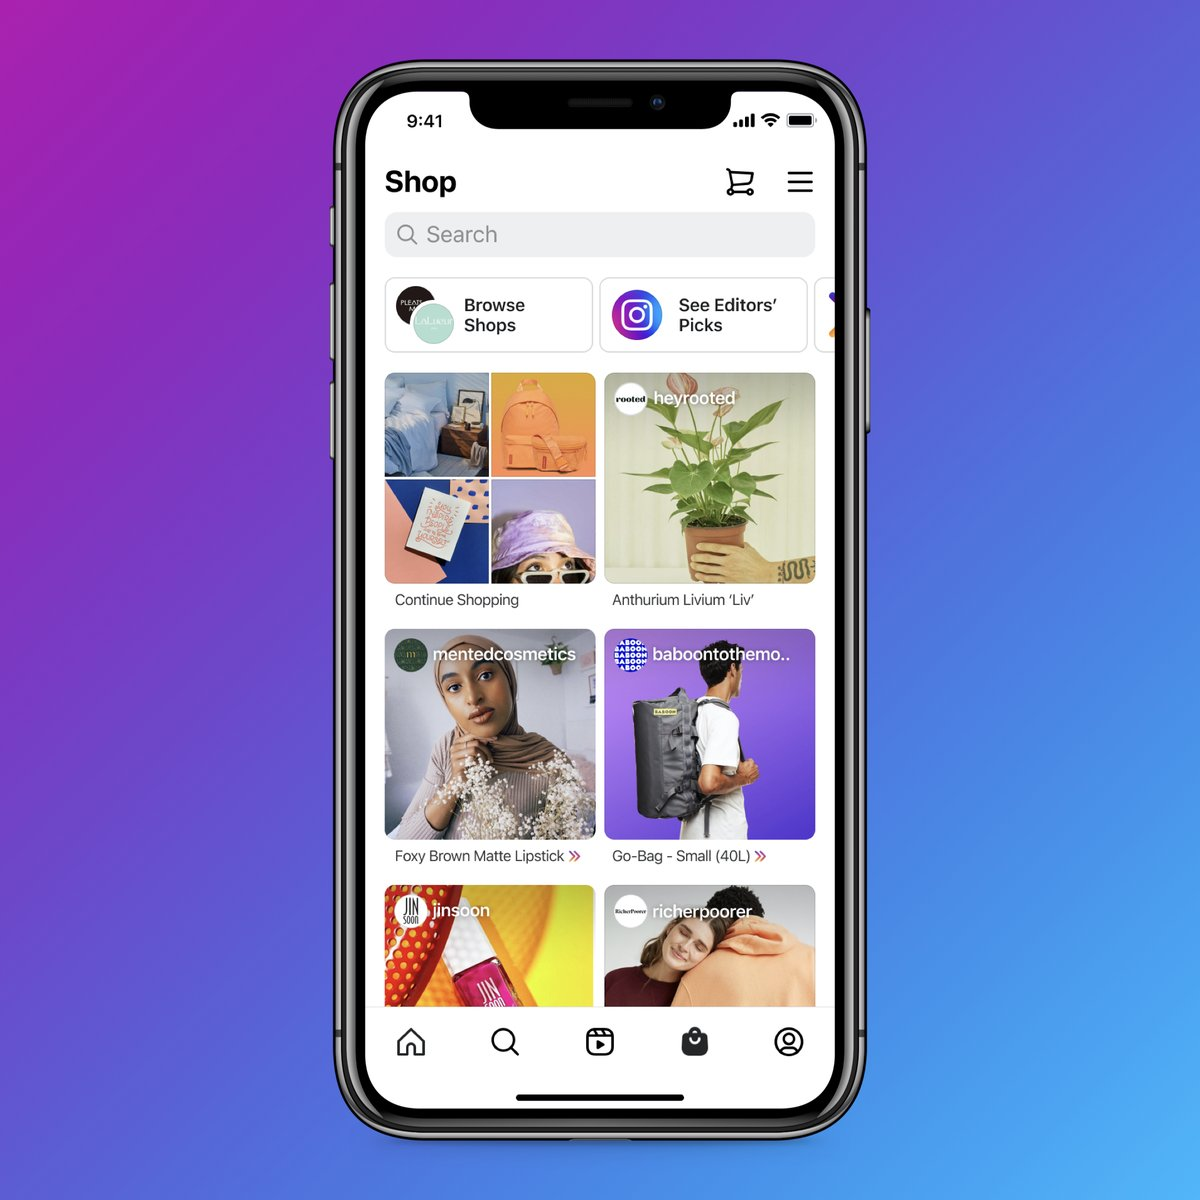 The Shop tab is a better way to connect with brands, find products you love and support small businesses 🛍   You can find personalized recommendations, editors' picks and more 🙌   We're excited about all these updates and think they give Instagram a much-needed refresh.  ❤️